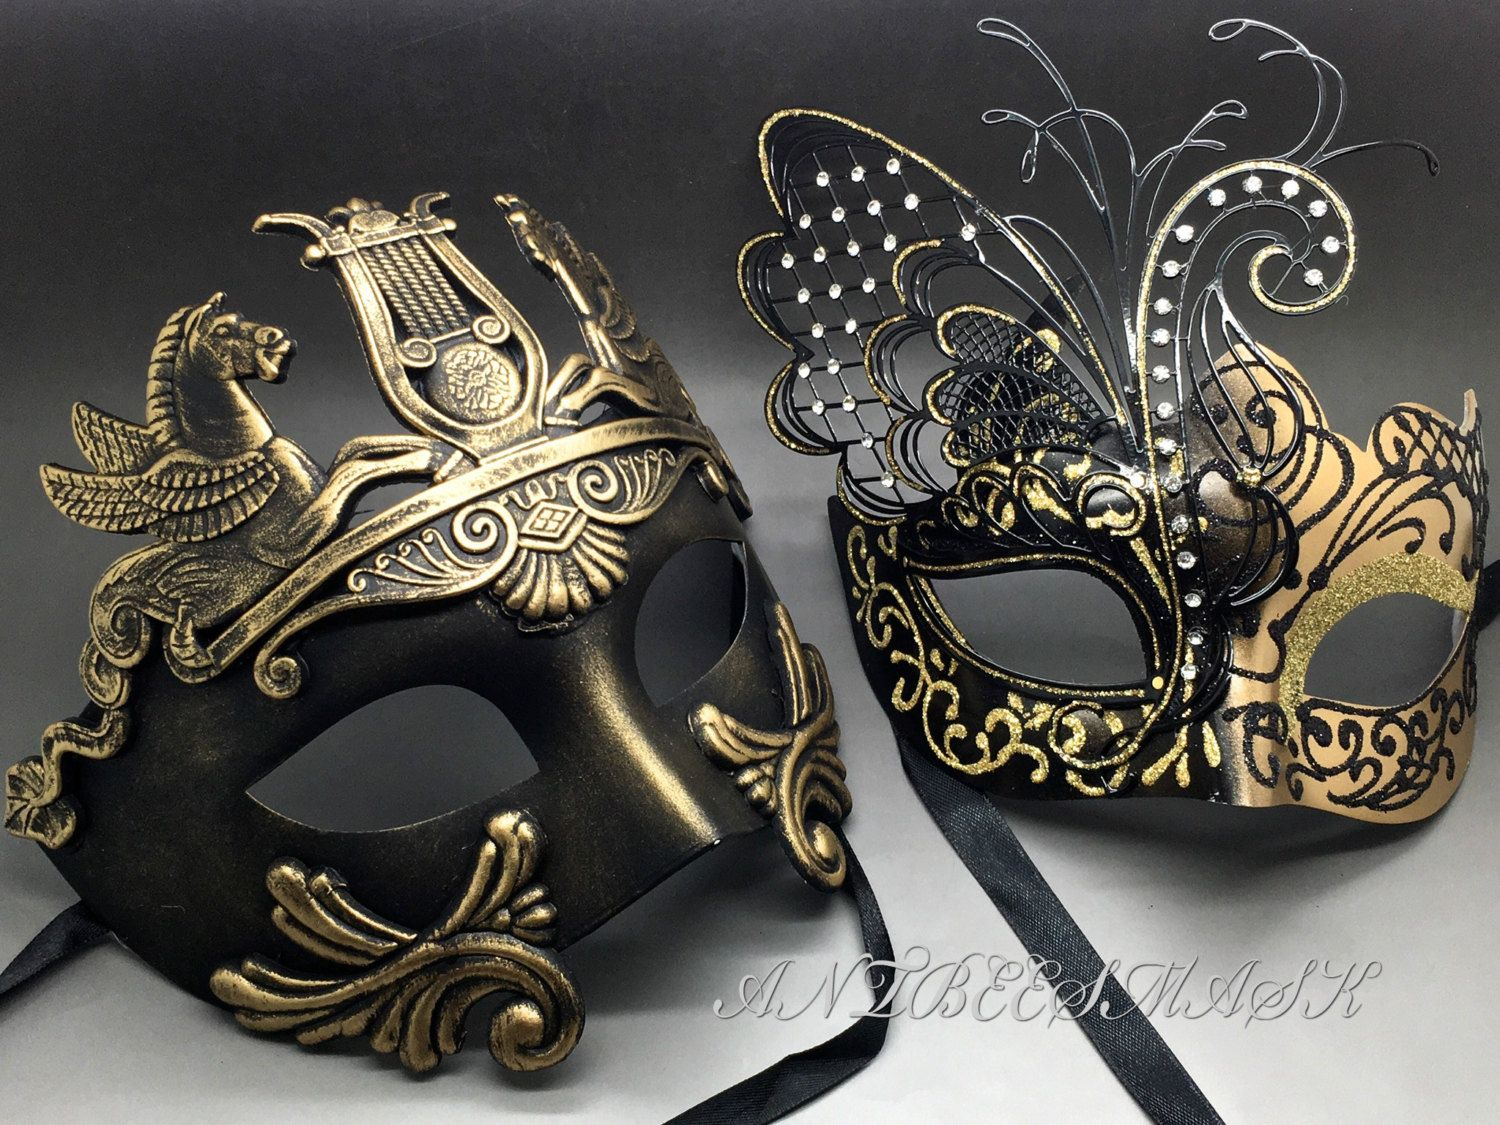 Masquerade mask masquerade mask vine mask metal lace masquerade - Couple Gold Black Laser Cut Metal Butterfly And Rome Warrior Venetian Masquerade Party Mask